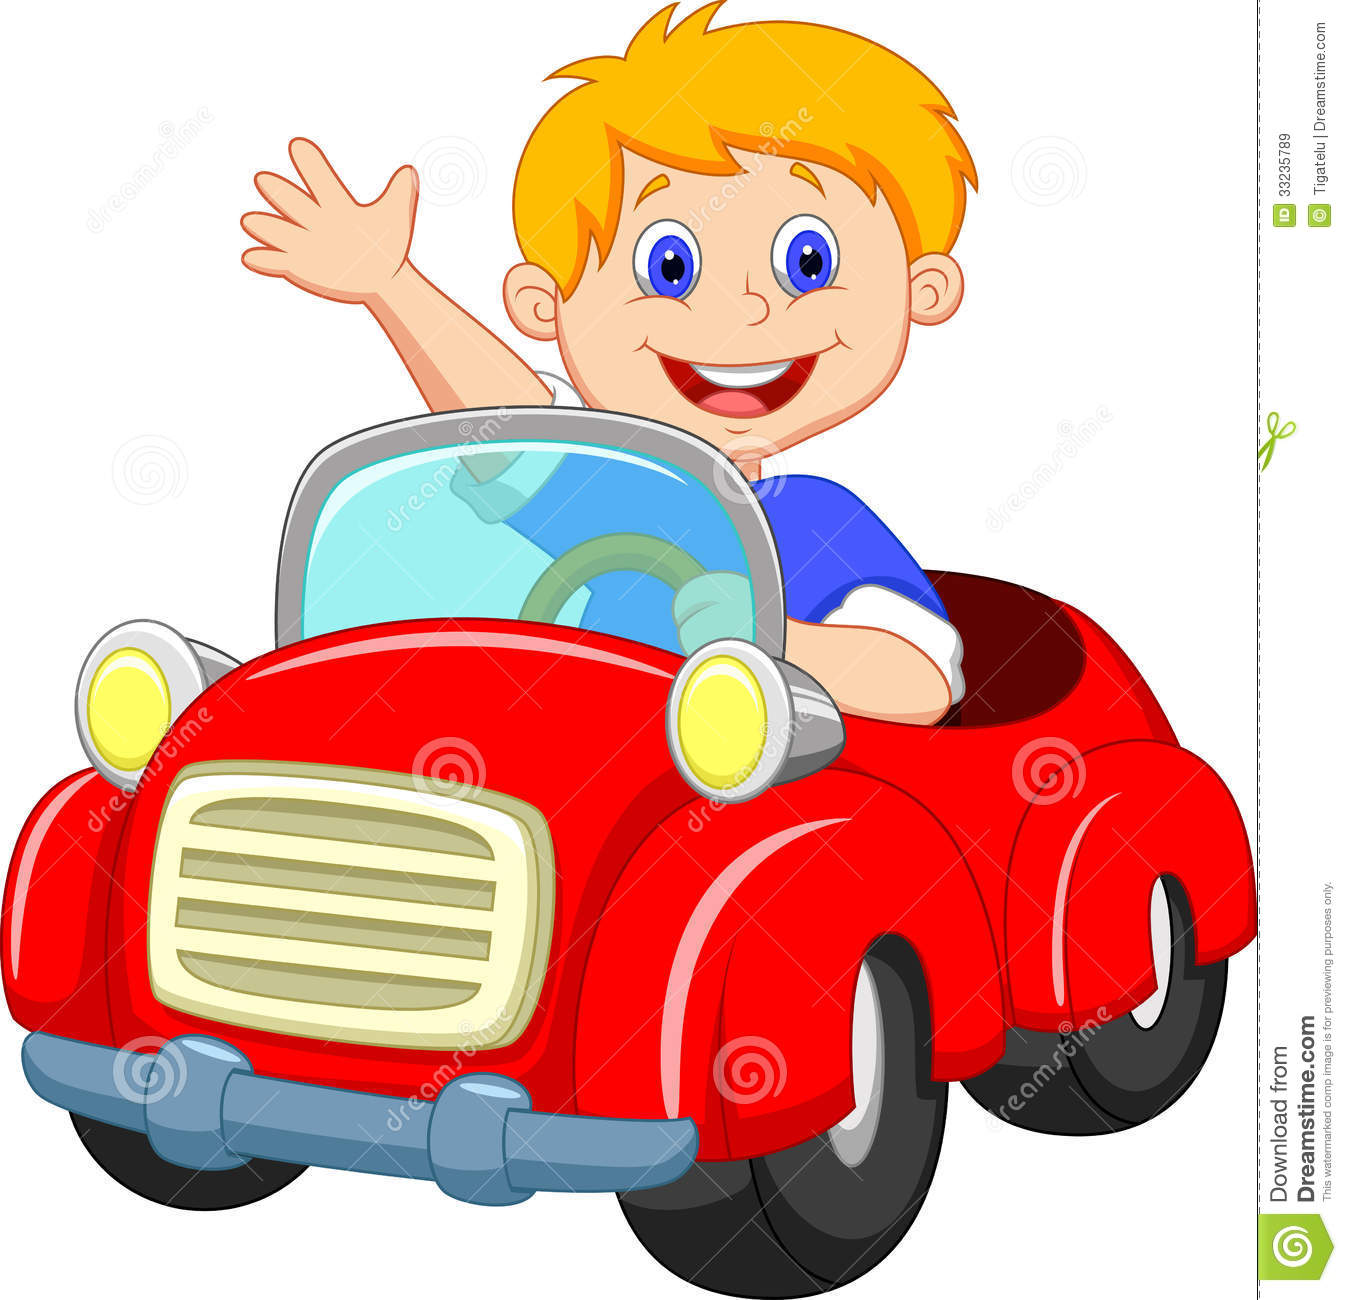 cartoon boy in the red car royalty free stock images baby owl clipart free baby owl clip art free